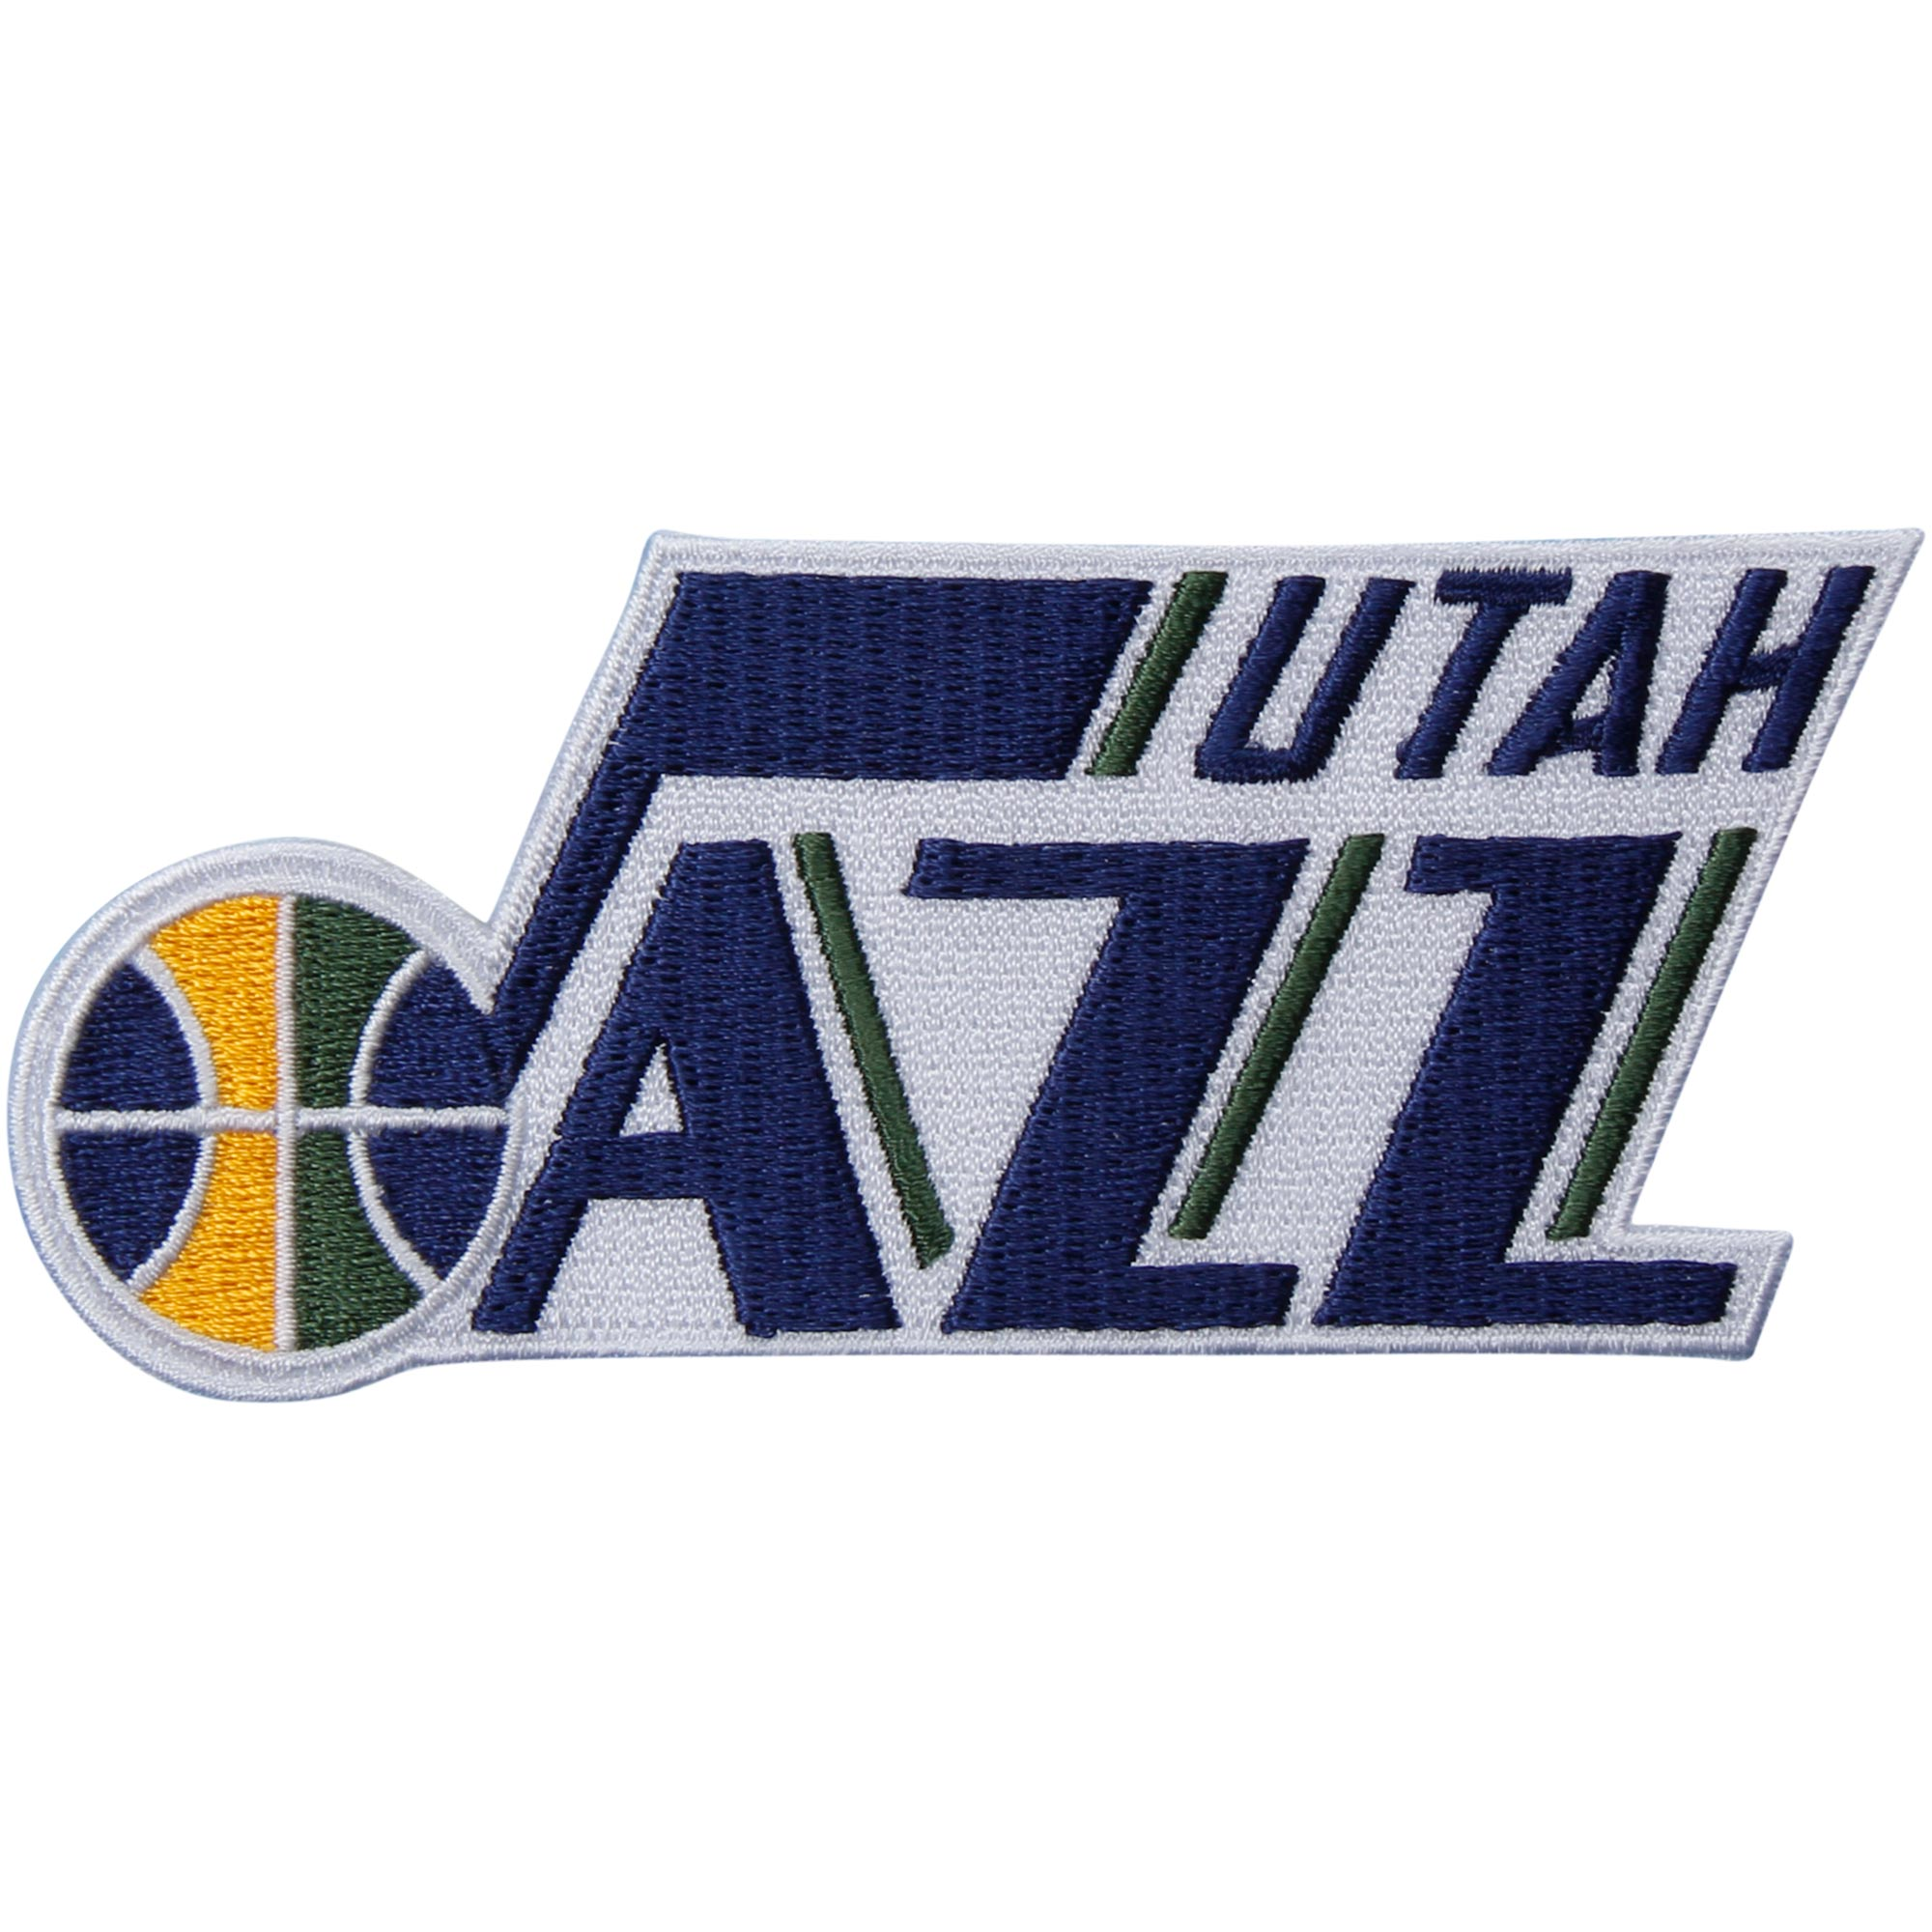 Utah Jazz Embroidered Team Patch - No Size